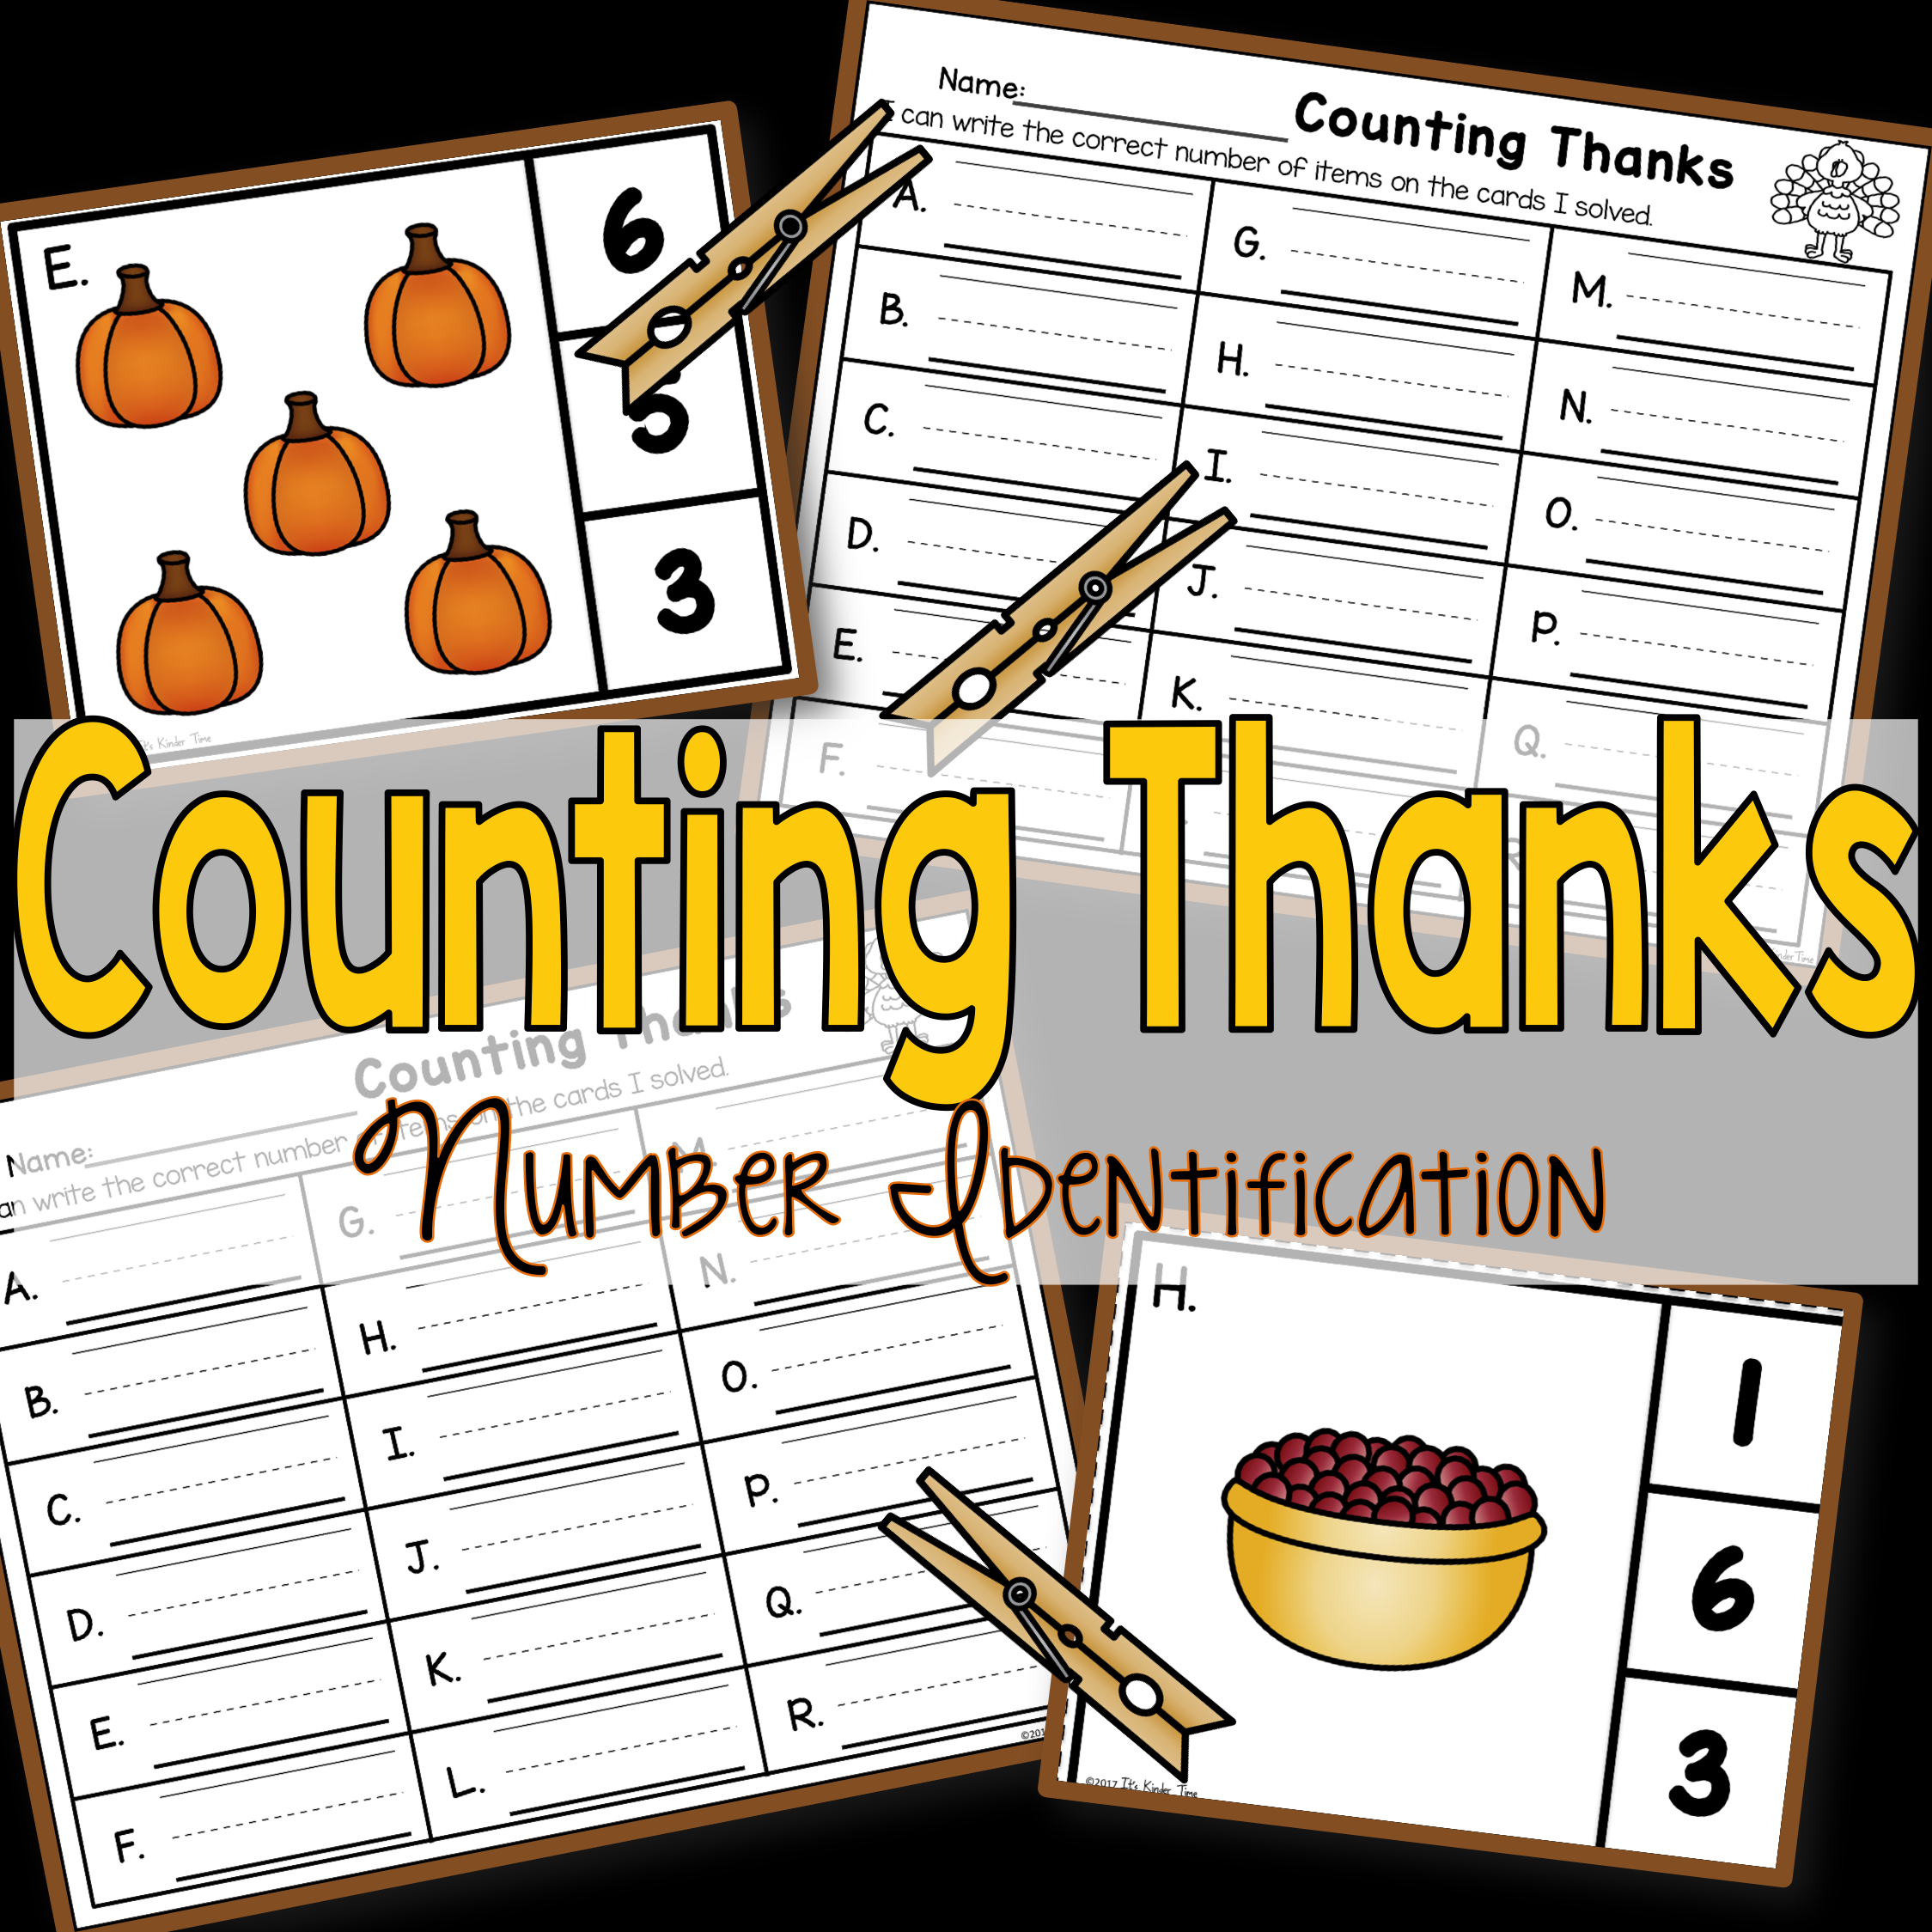 Counting Thanks